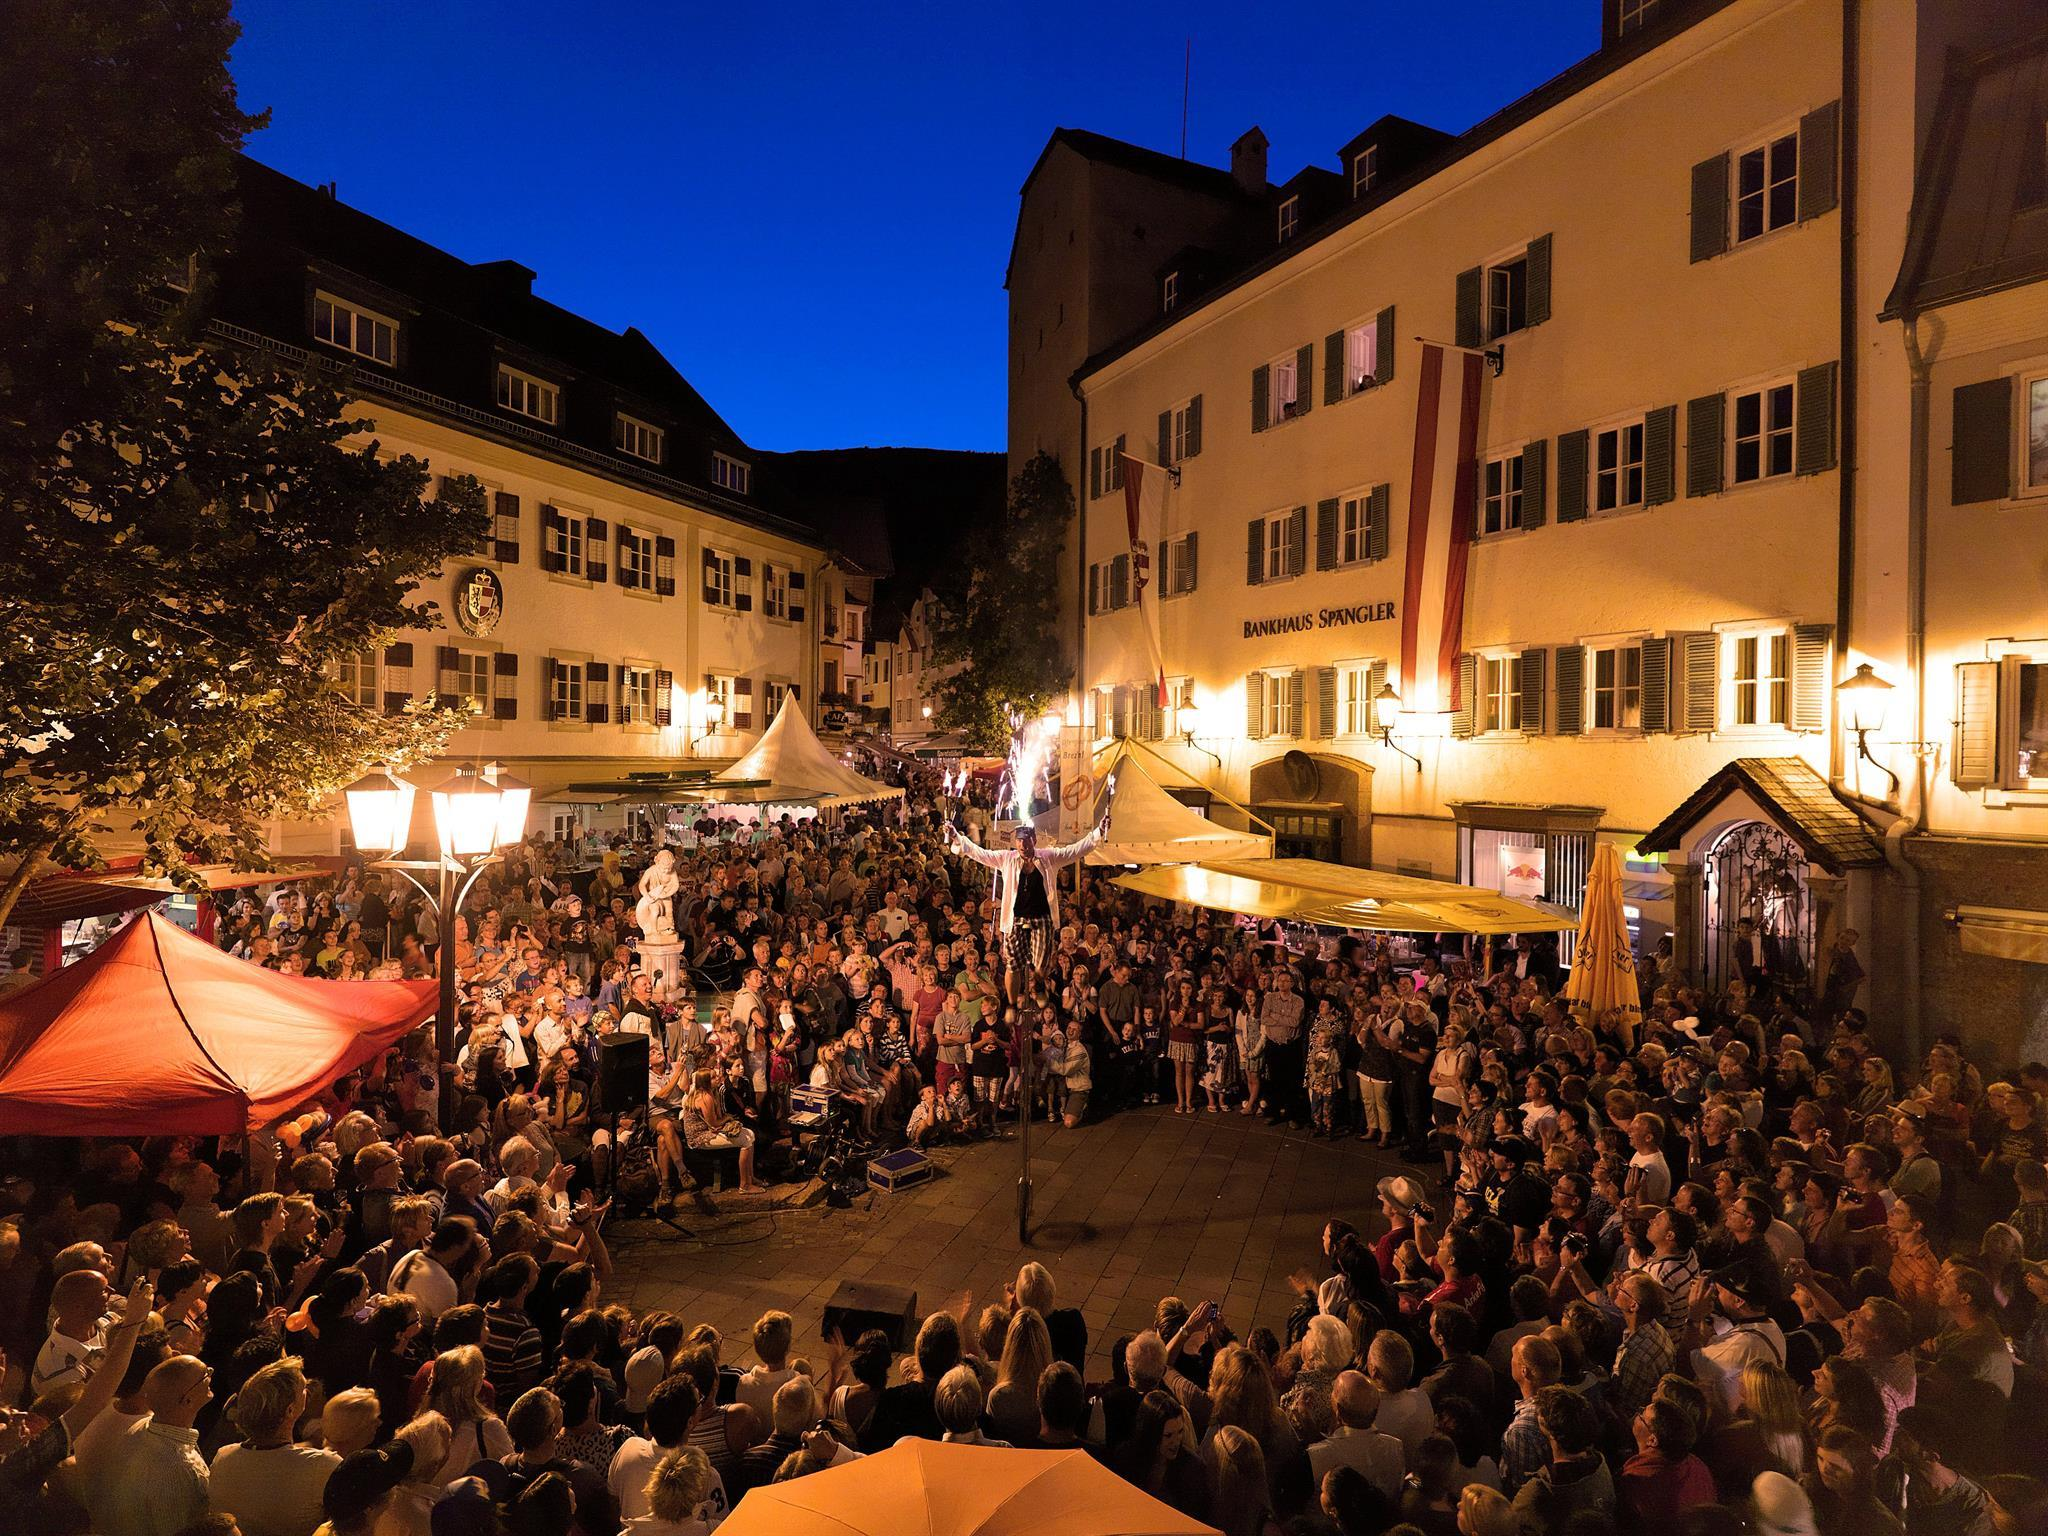 Zell SummerNightFestival - 12/08/2020, from 7:00 PM